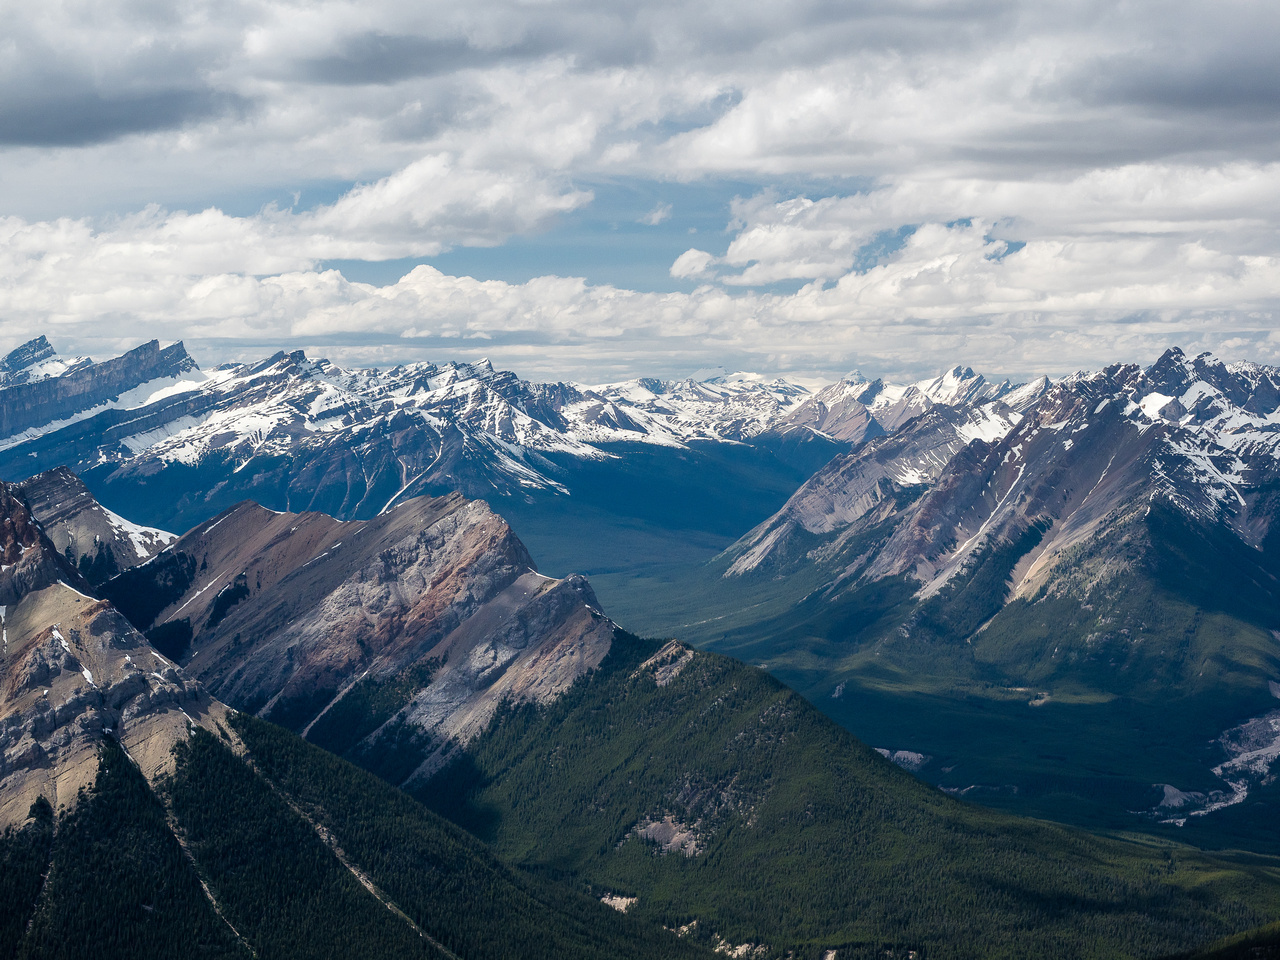 View up the McDonald Creek Valley towards the Cloister Mountains and the White Goat Wilderness Area.